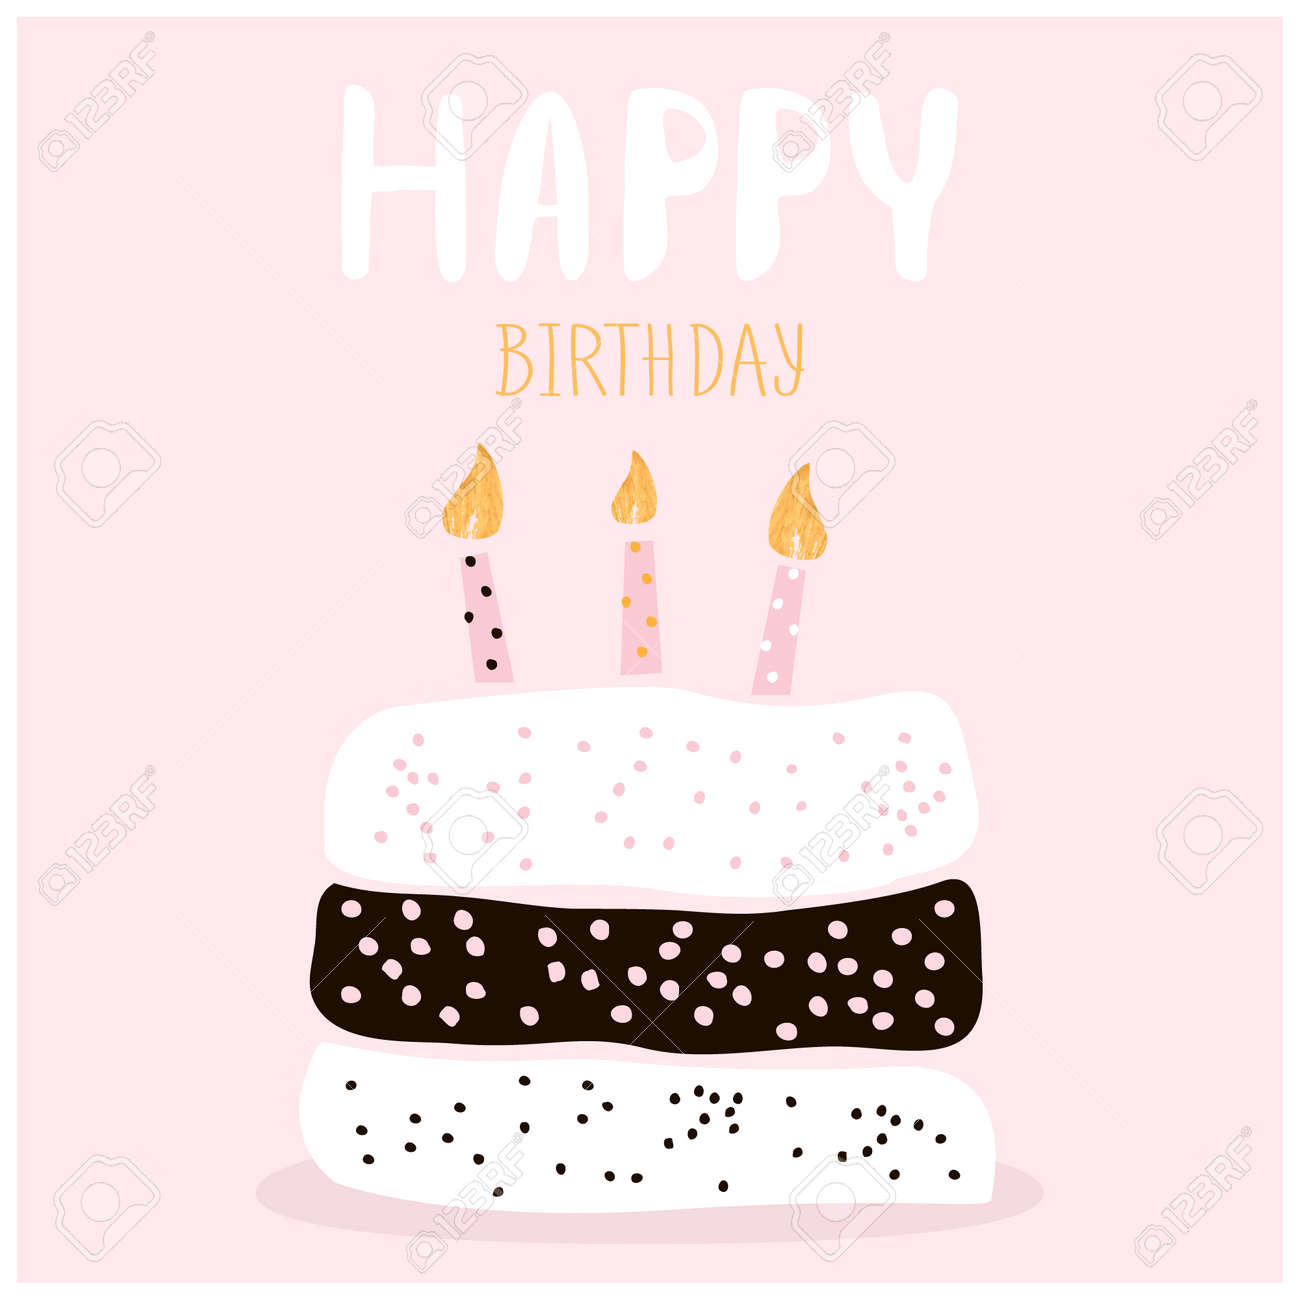 Superb Cute Cake With Happy Birthday Wish. Greeting Card Template. Creative Happy  Birthday Background.